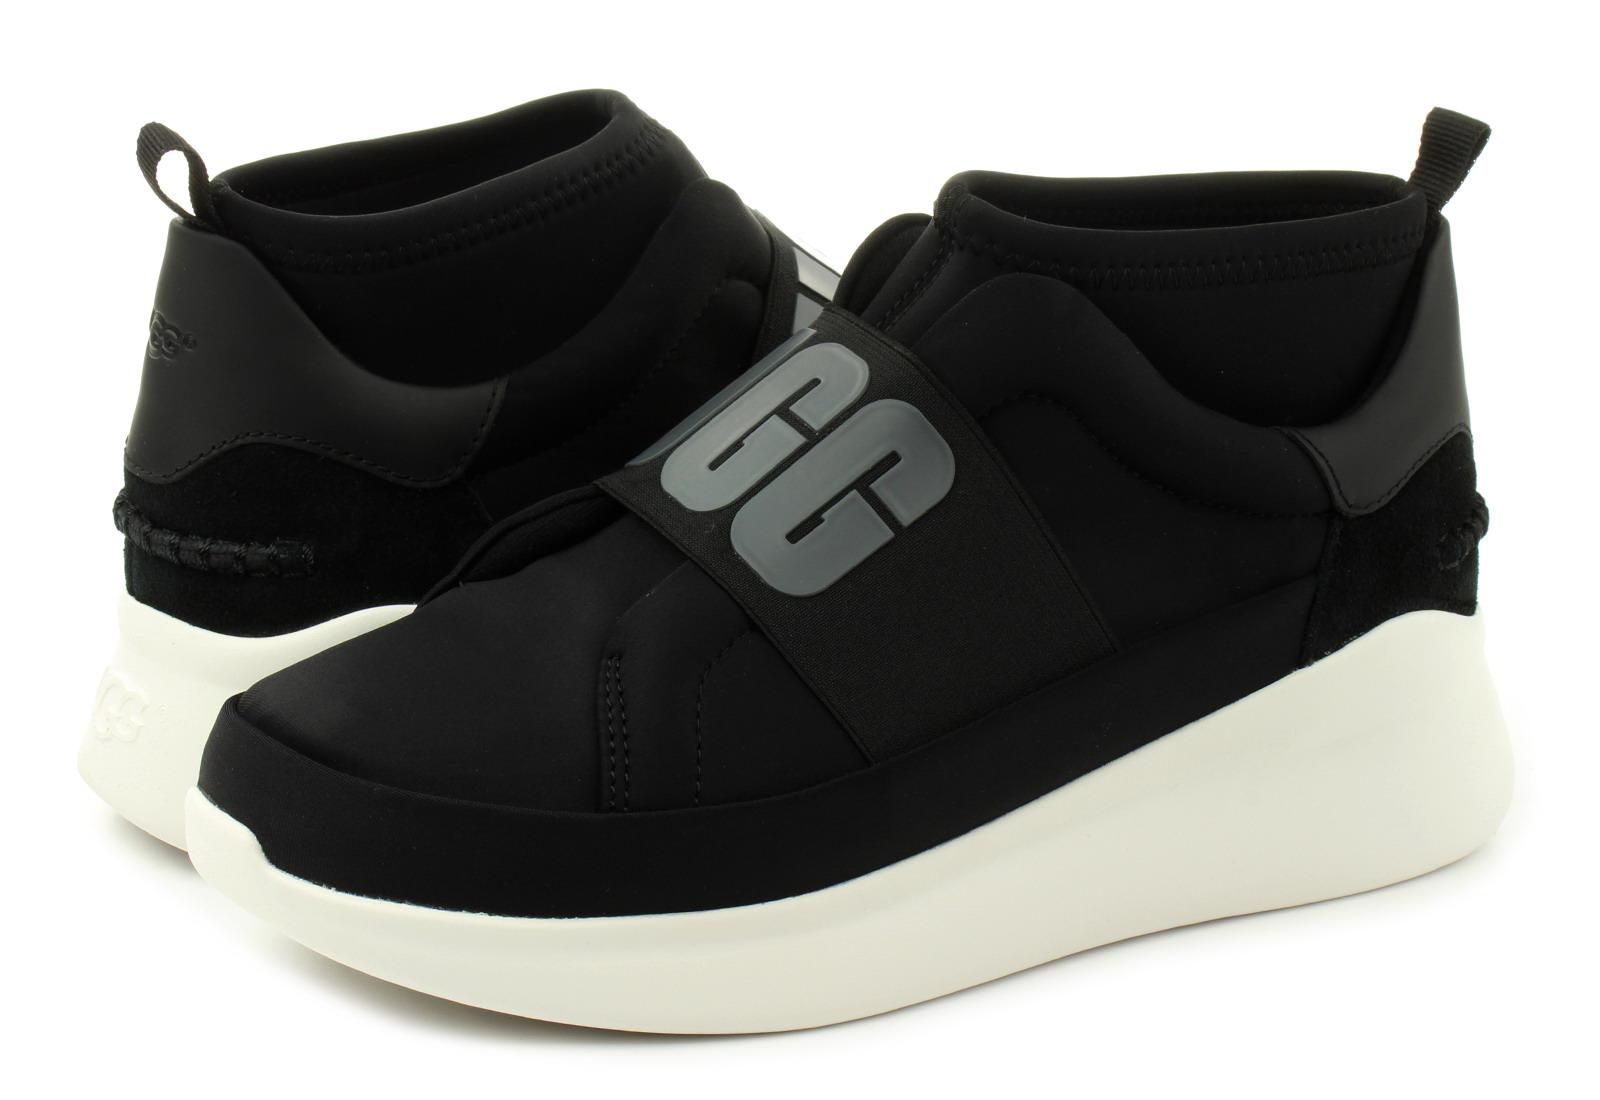 4f61cfec14e Ugg Shoes - Neutra Sneaker - 1095097-blk - Online shop for sneakers, shoes  and boots